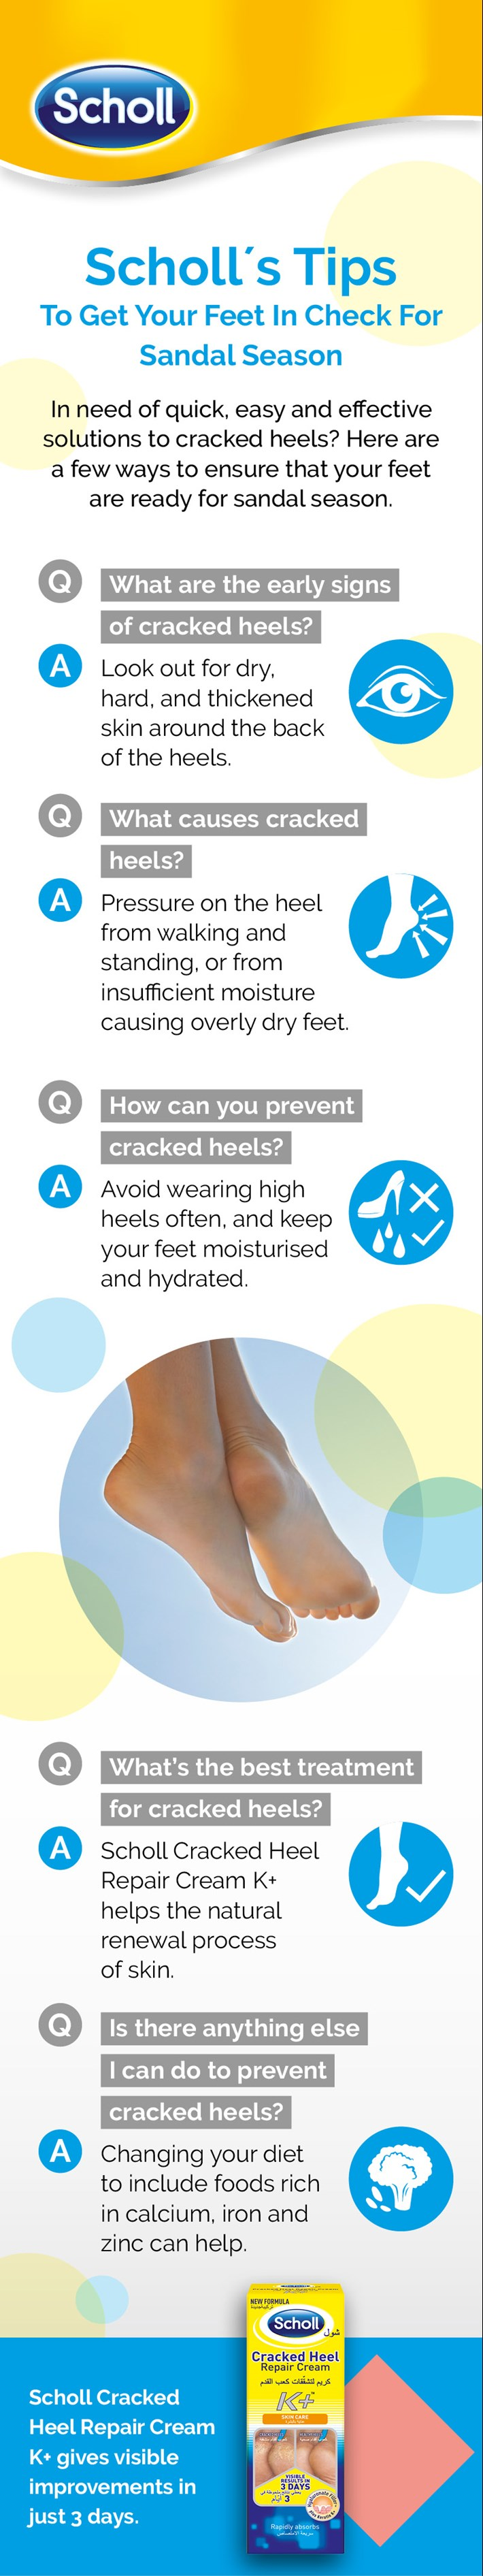 All about cracked heels